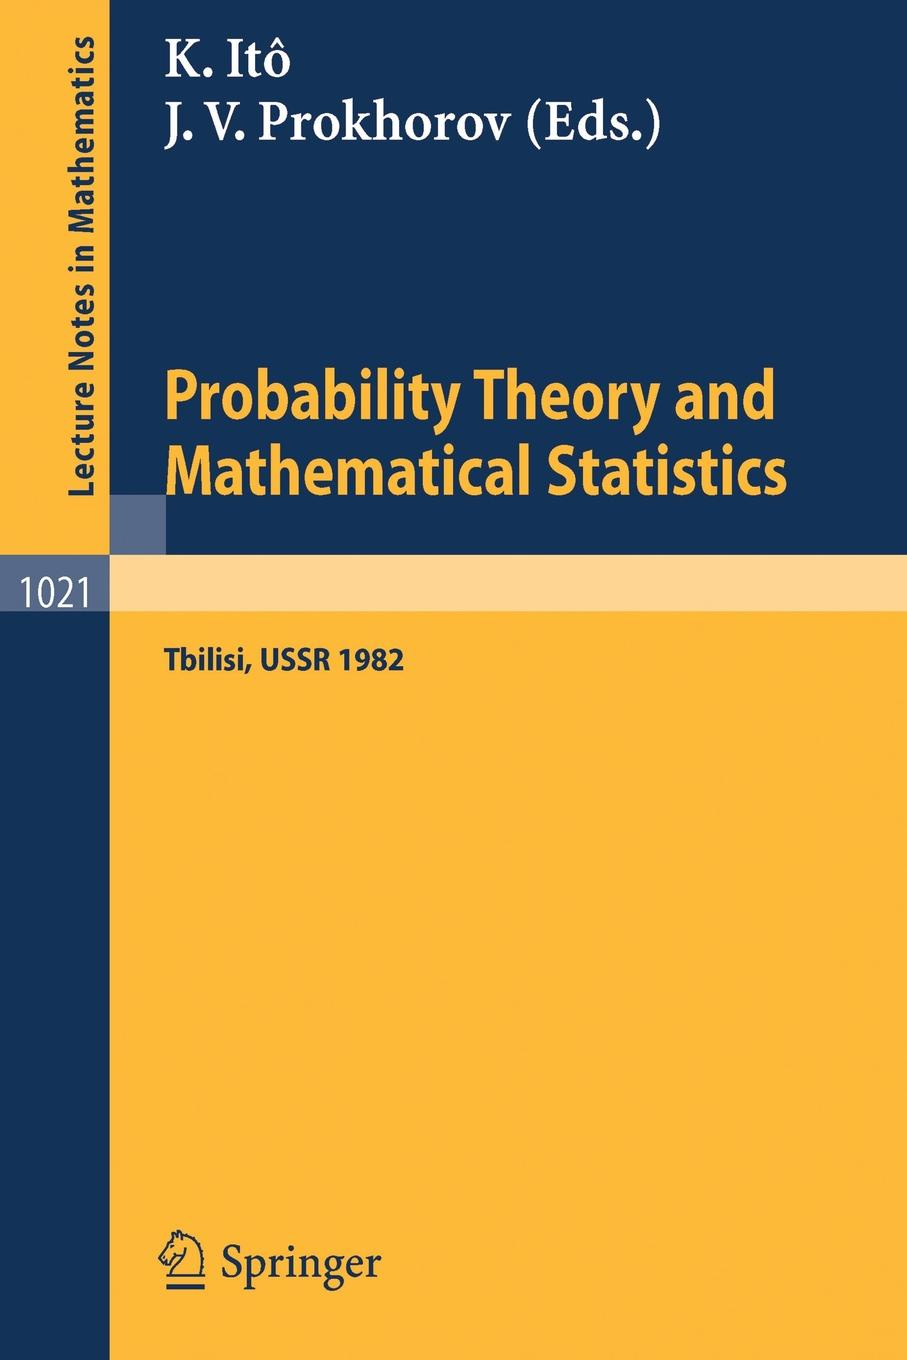 Probability Theory and Mathematical Statistics. Proceedings of the Fourth USSR-Japan Symposium, held at Tbilisi, USSR, August 23-29, 1982 tbilisi